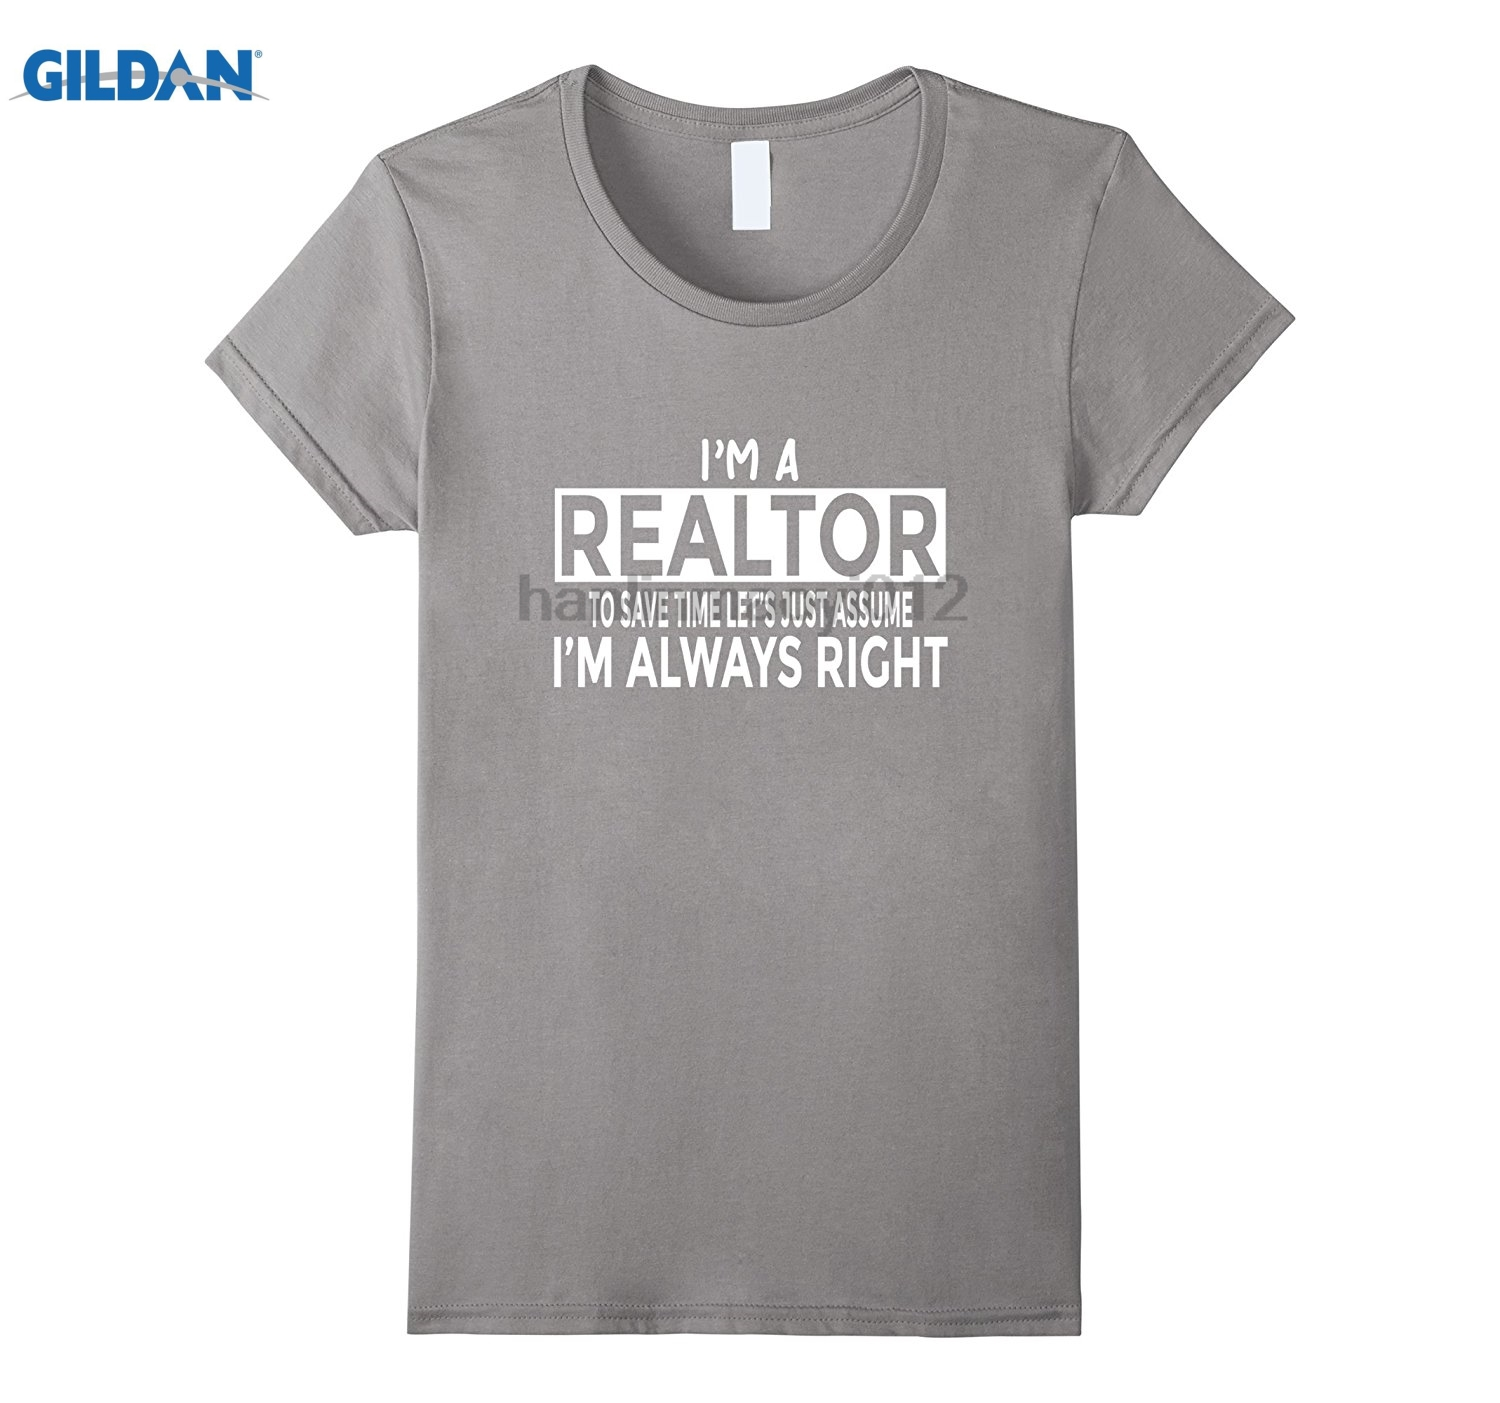 GILDAN Funny Real Estate Agent T-Shirt Just Assume Im Always Right Printed T-shirt glass ...